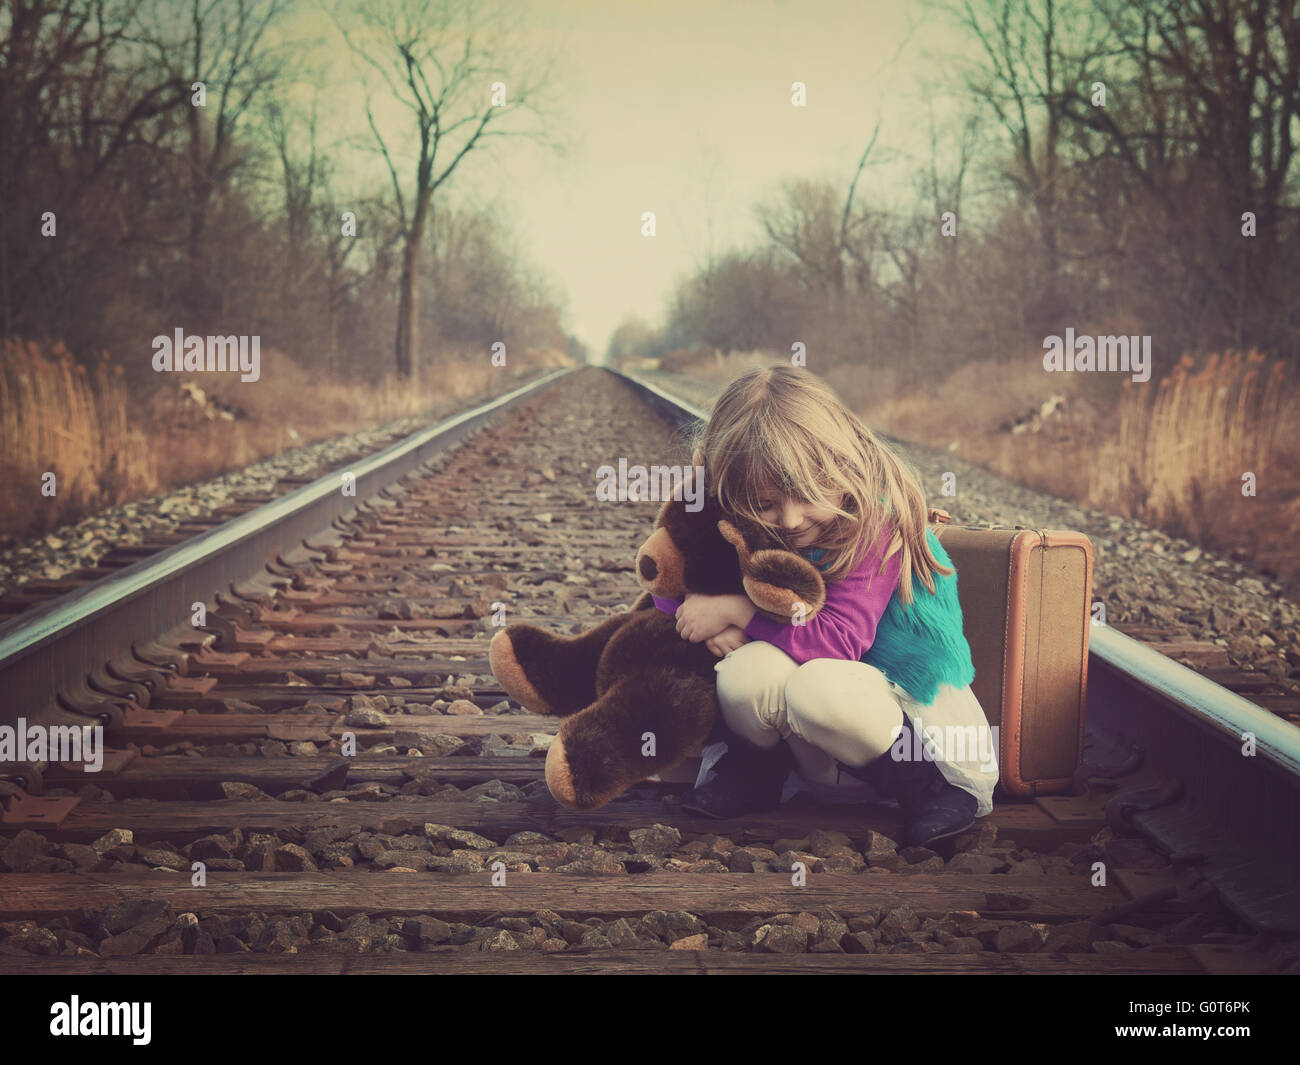 A little girl is sitting on an old train track outside and hugging a teddy bear for a vintage memory or travel concept. - Stock Image